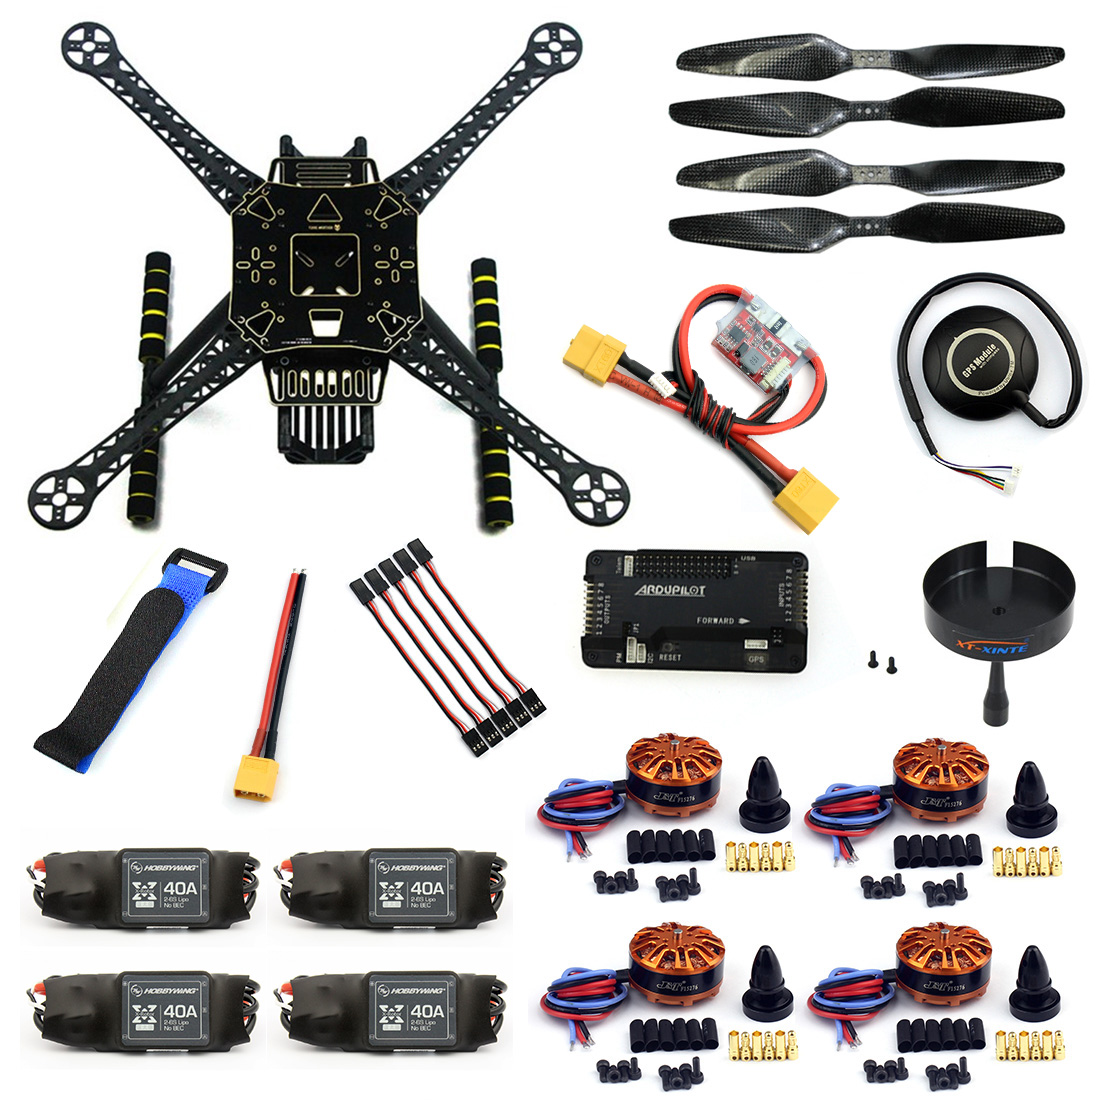 F19457-F DIY 4-Axle RC FPV Drone S600 Frame Kit with APM 2.8 Flight Control 40A ESC 700KV Motor GPS7M XT60 Plug Accessories f2s flight control with m8n gps t plug xt60 galvanometer for fpv rc fixed wing aircraft